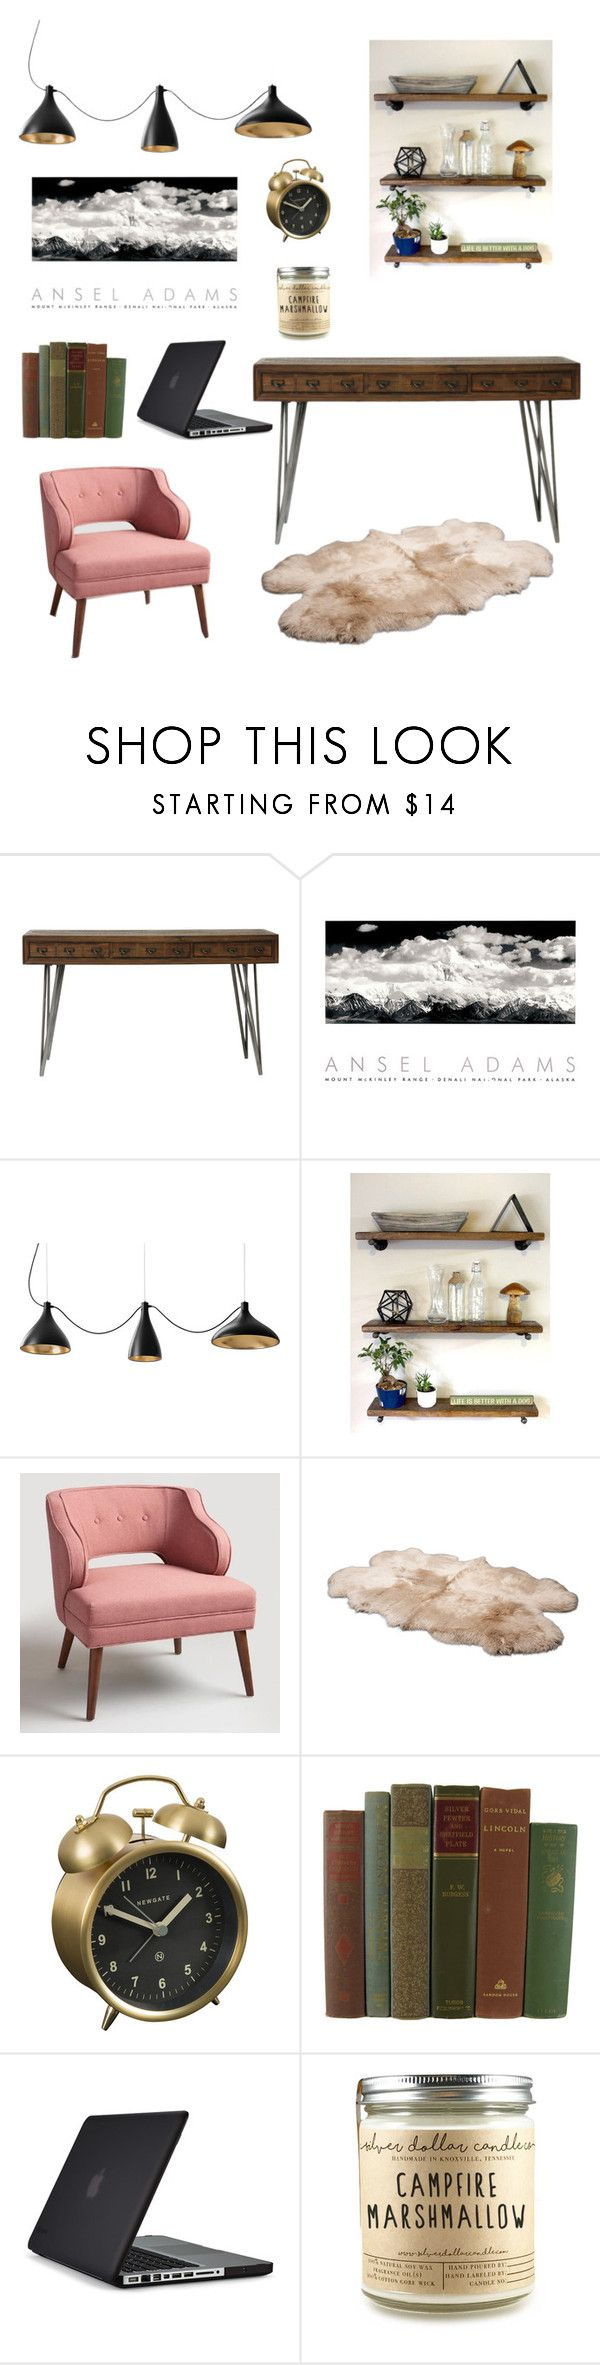 """""""Home Office"""" by shelbeylynngrace ❤ liked on Polyvore featuring interior, interiors, interior design, home, home decor, interior decorating, Moe's, Cost Plus World Market, UGG Australia and Newgate"""